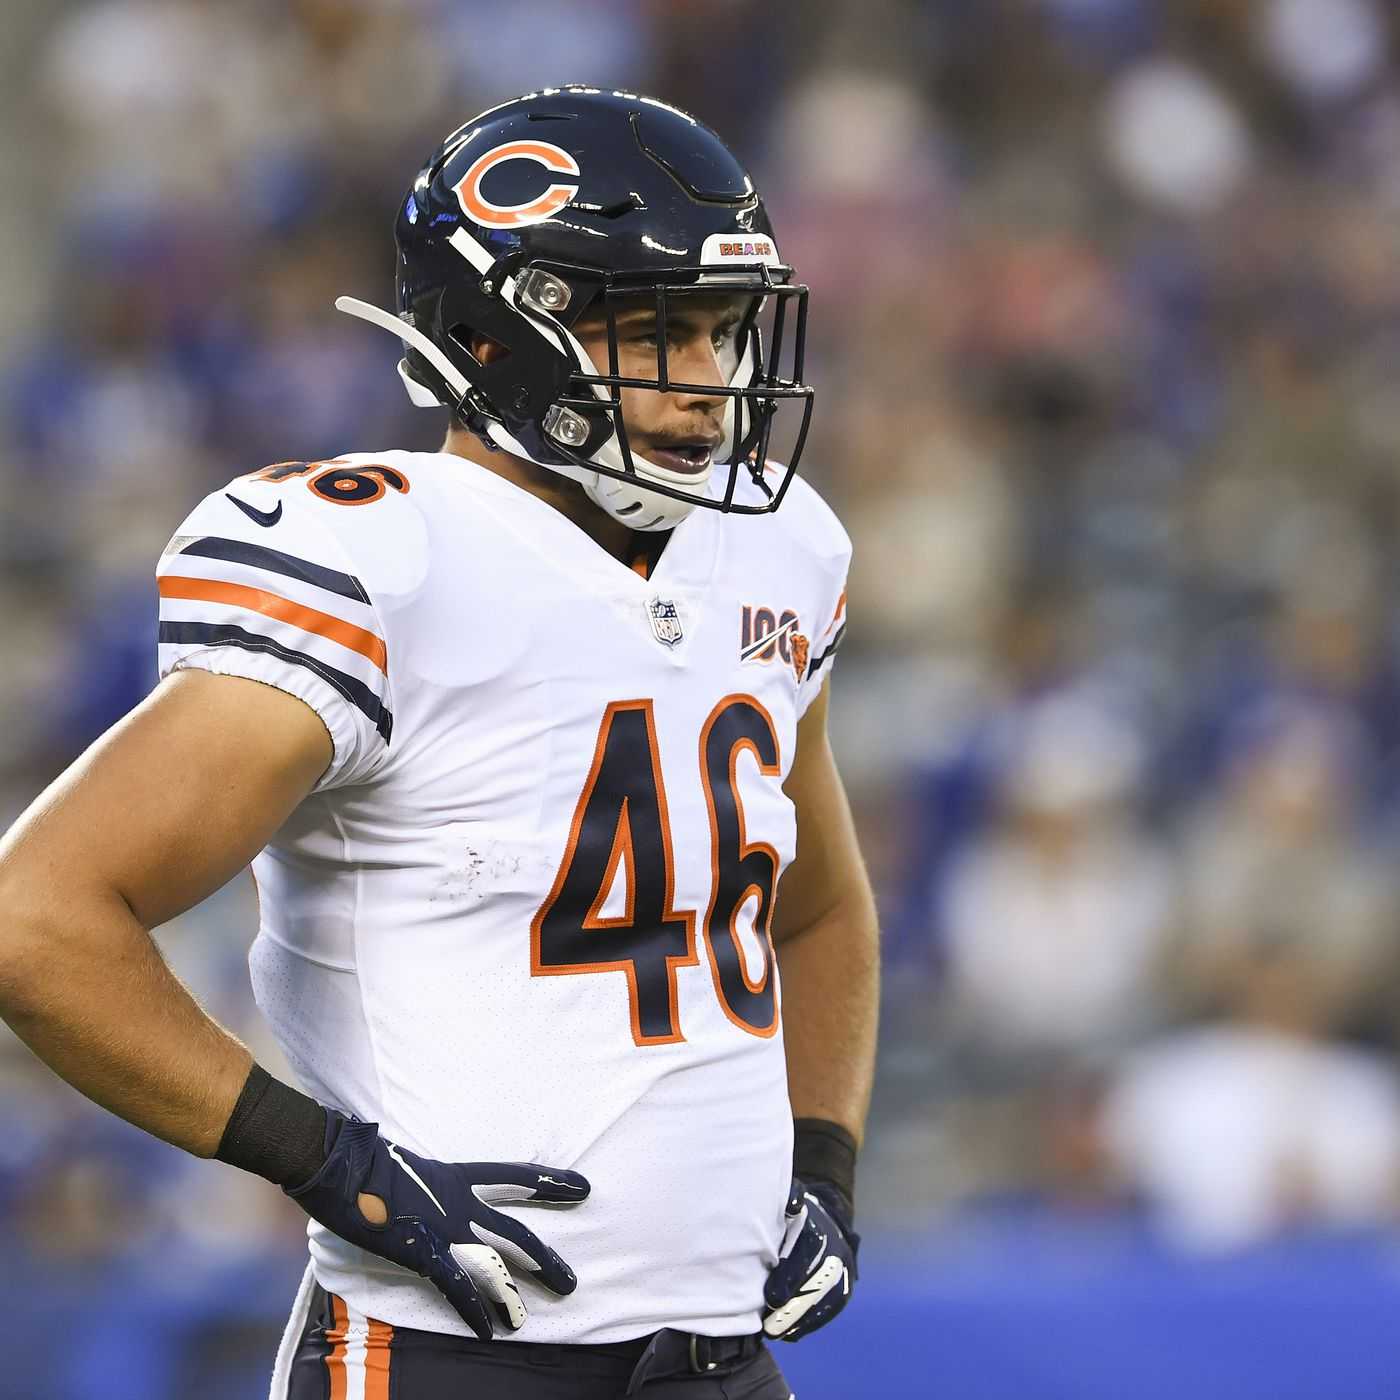 the best attitude 2c2d7 fe978 Three takeaways from Bears-Giants: Have the Bears found a ...